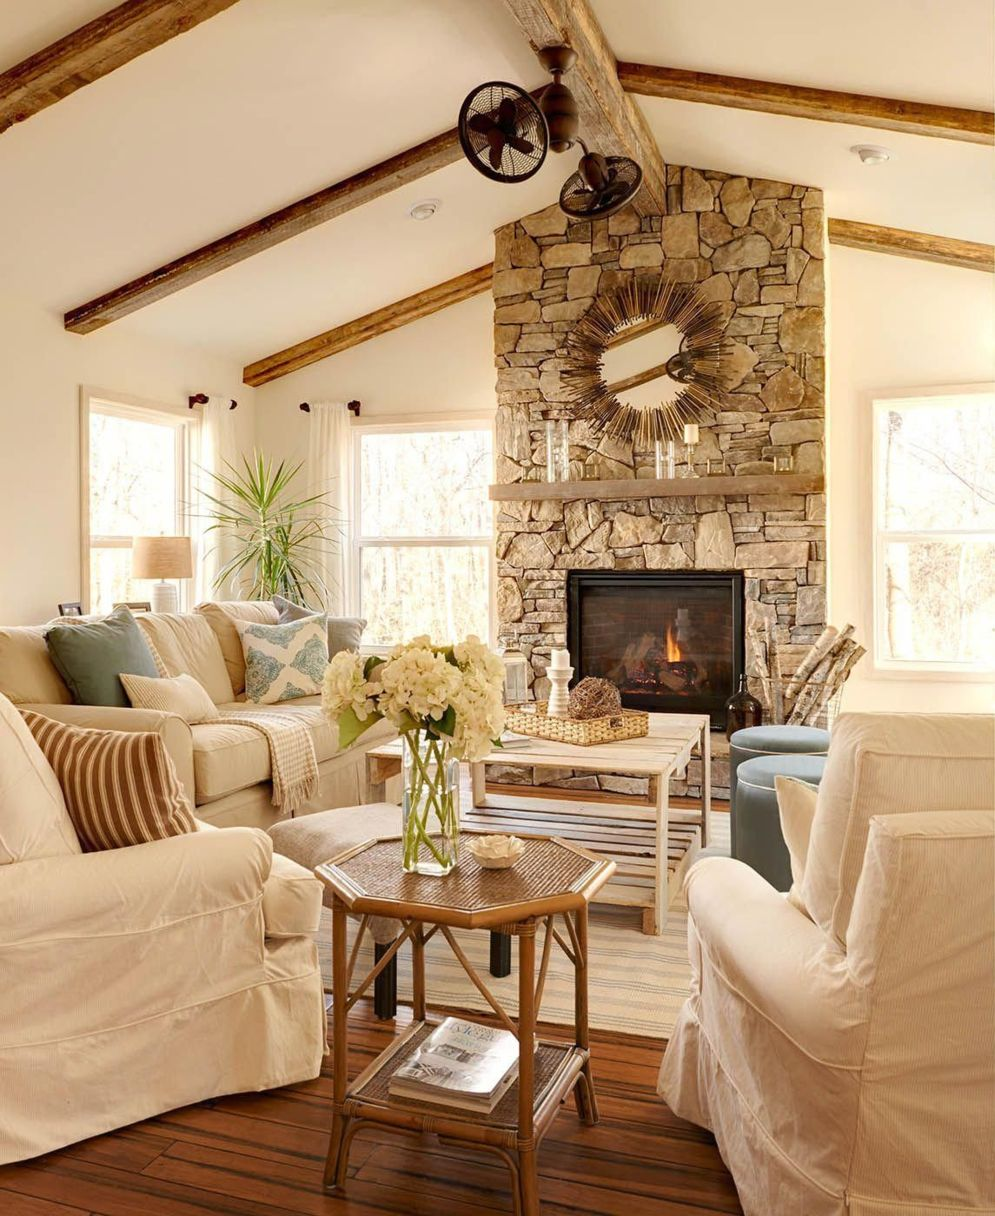 Spacious home images with vaulted ceiling showcasing grand and wonderful home design Image 34